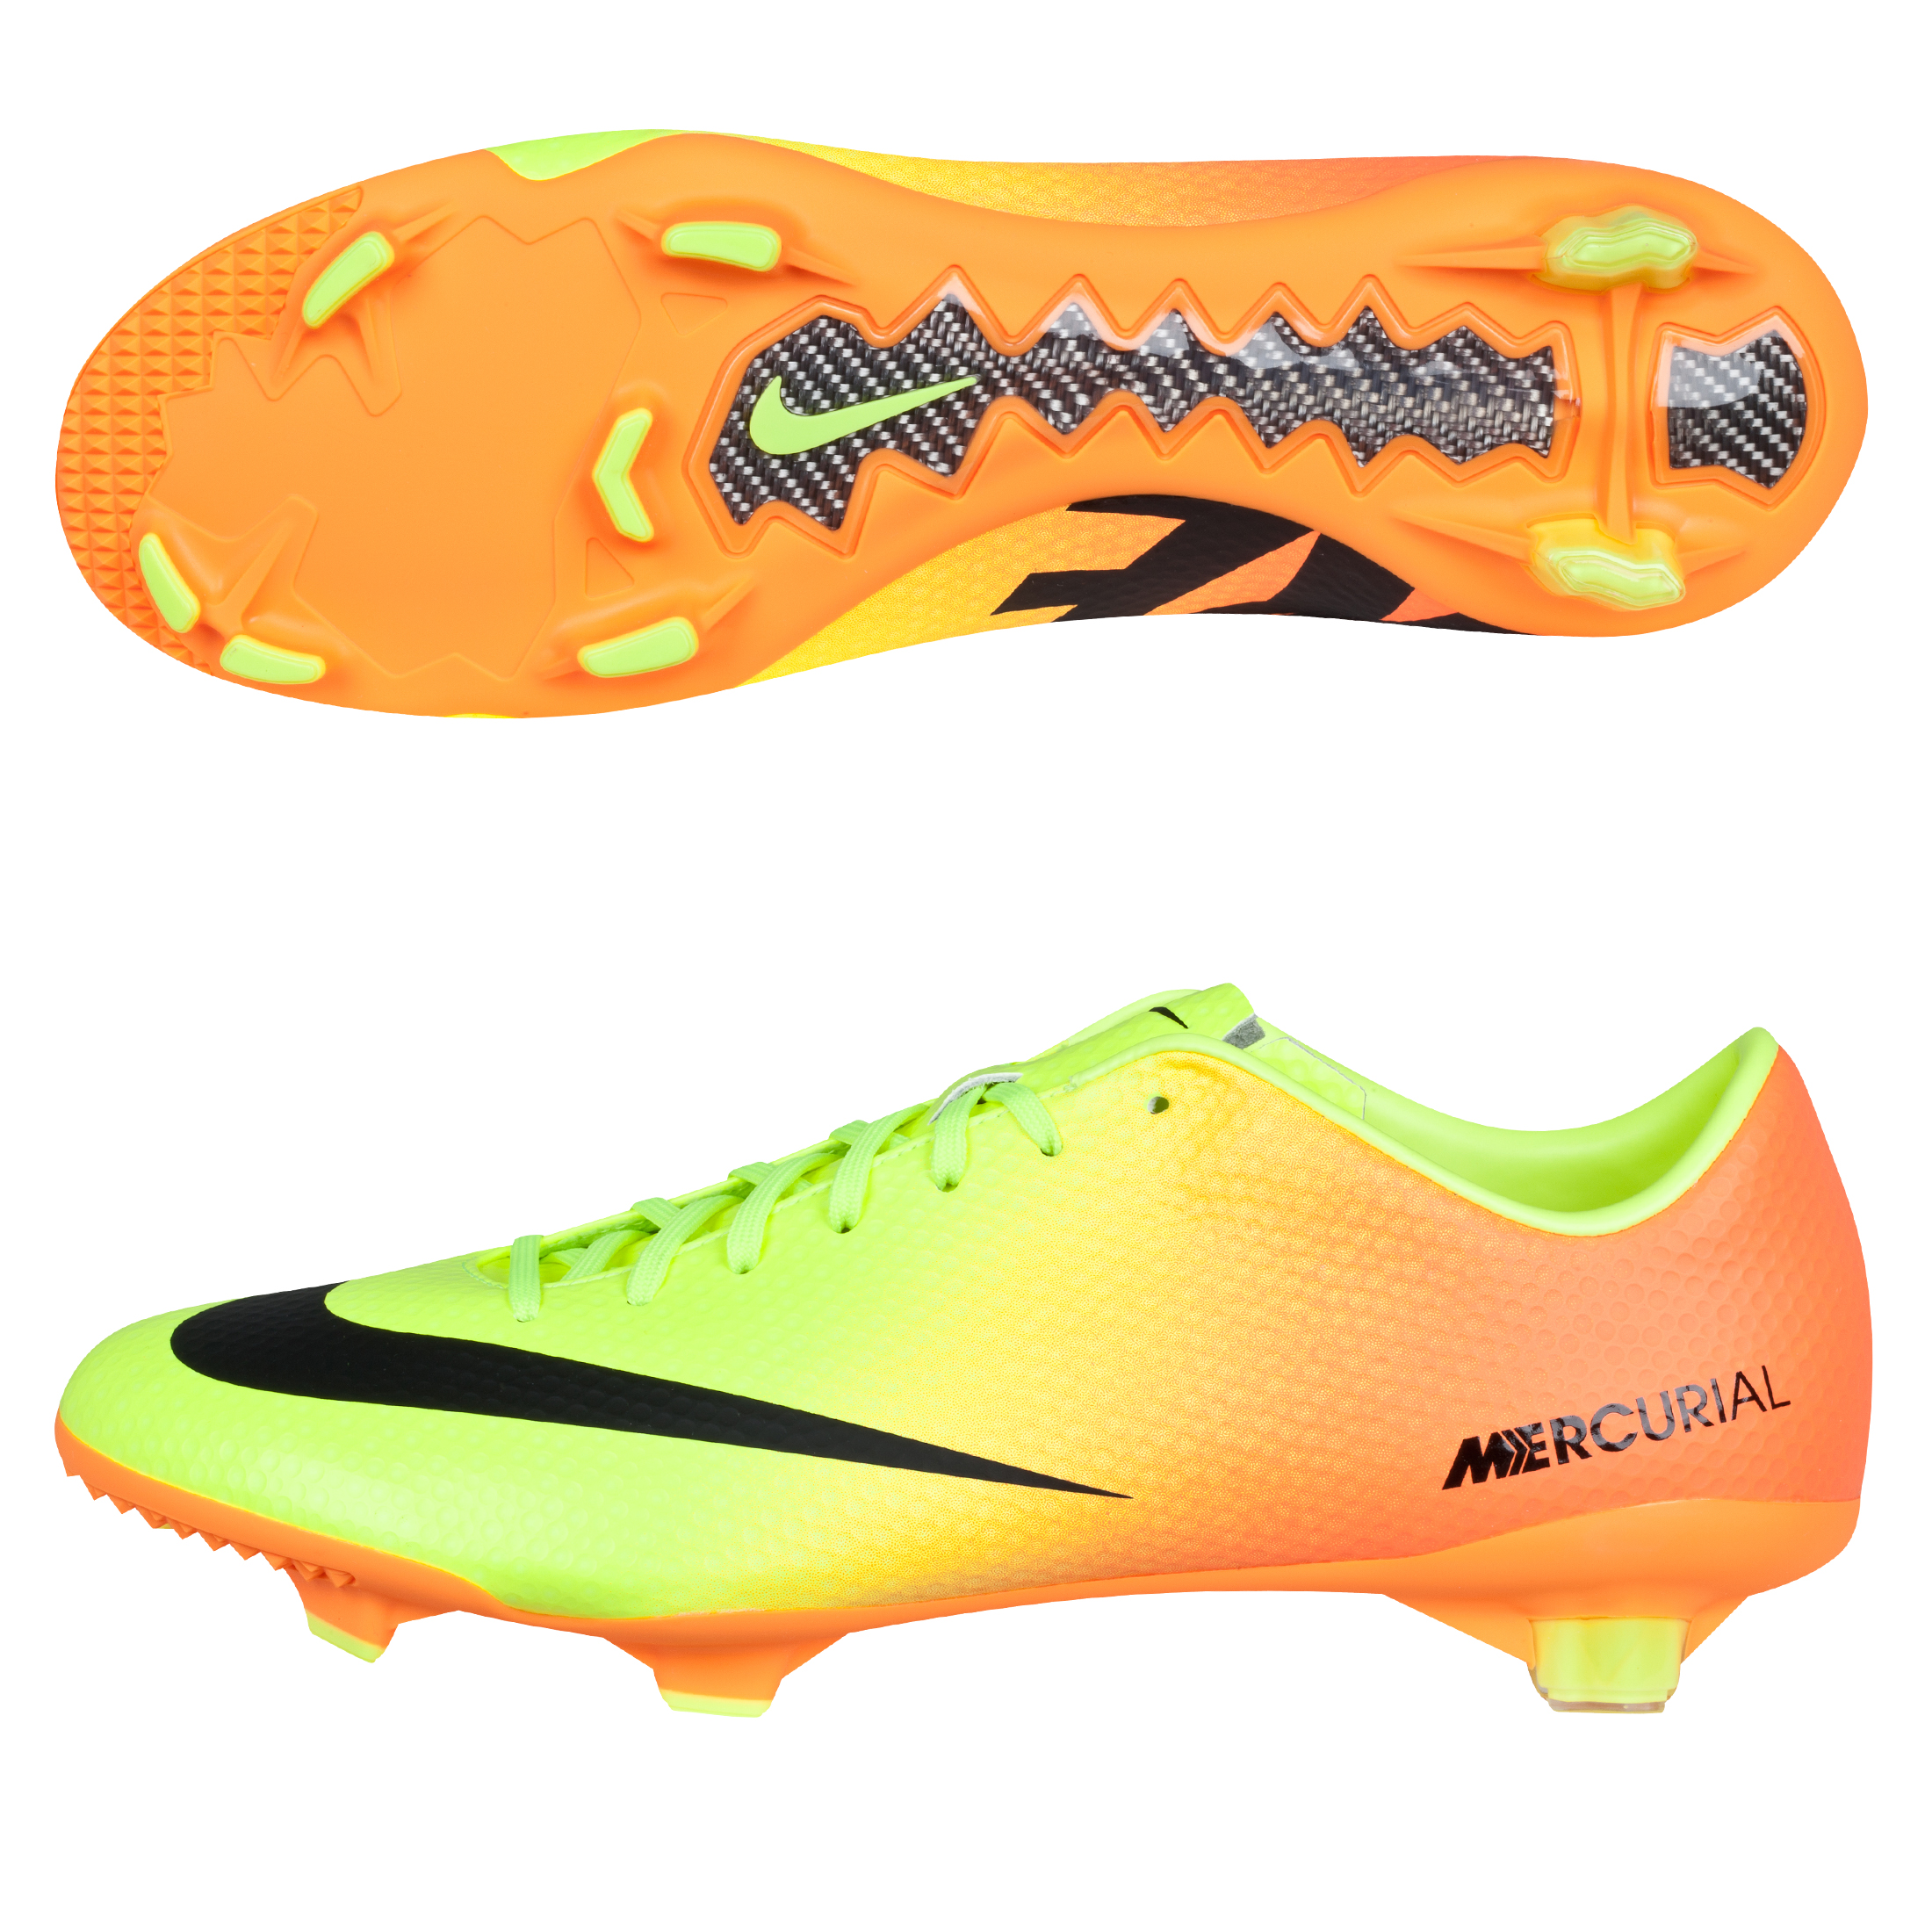 Nike Mercurial Veloce Firm Ground Football Boots Yellow